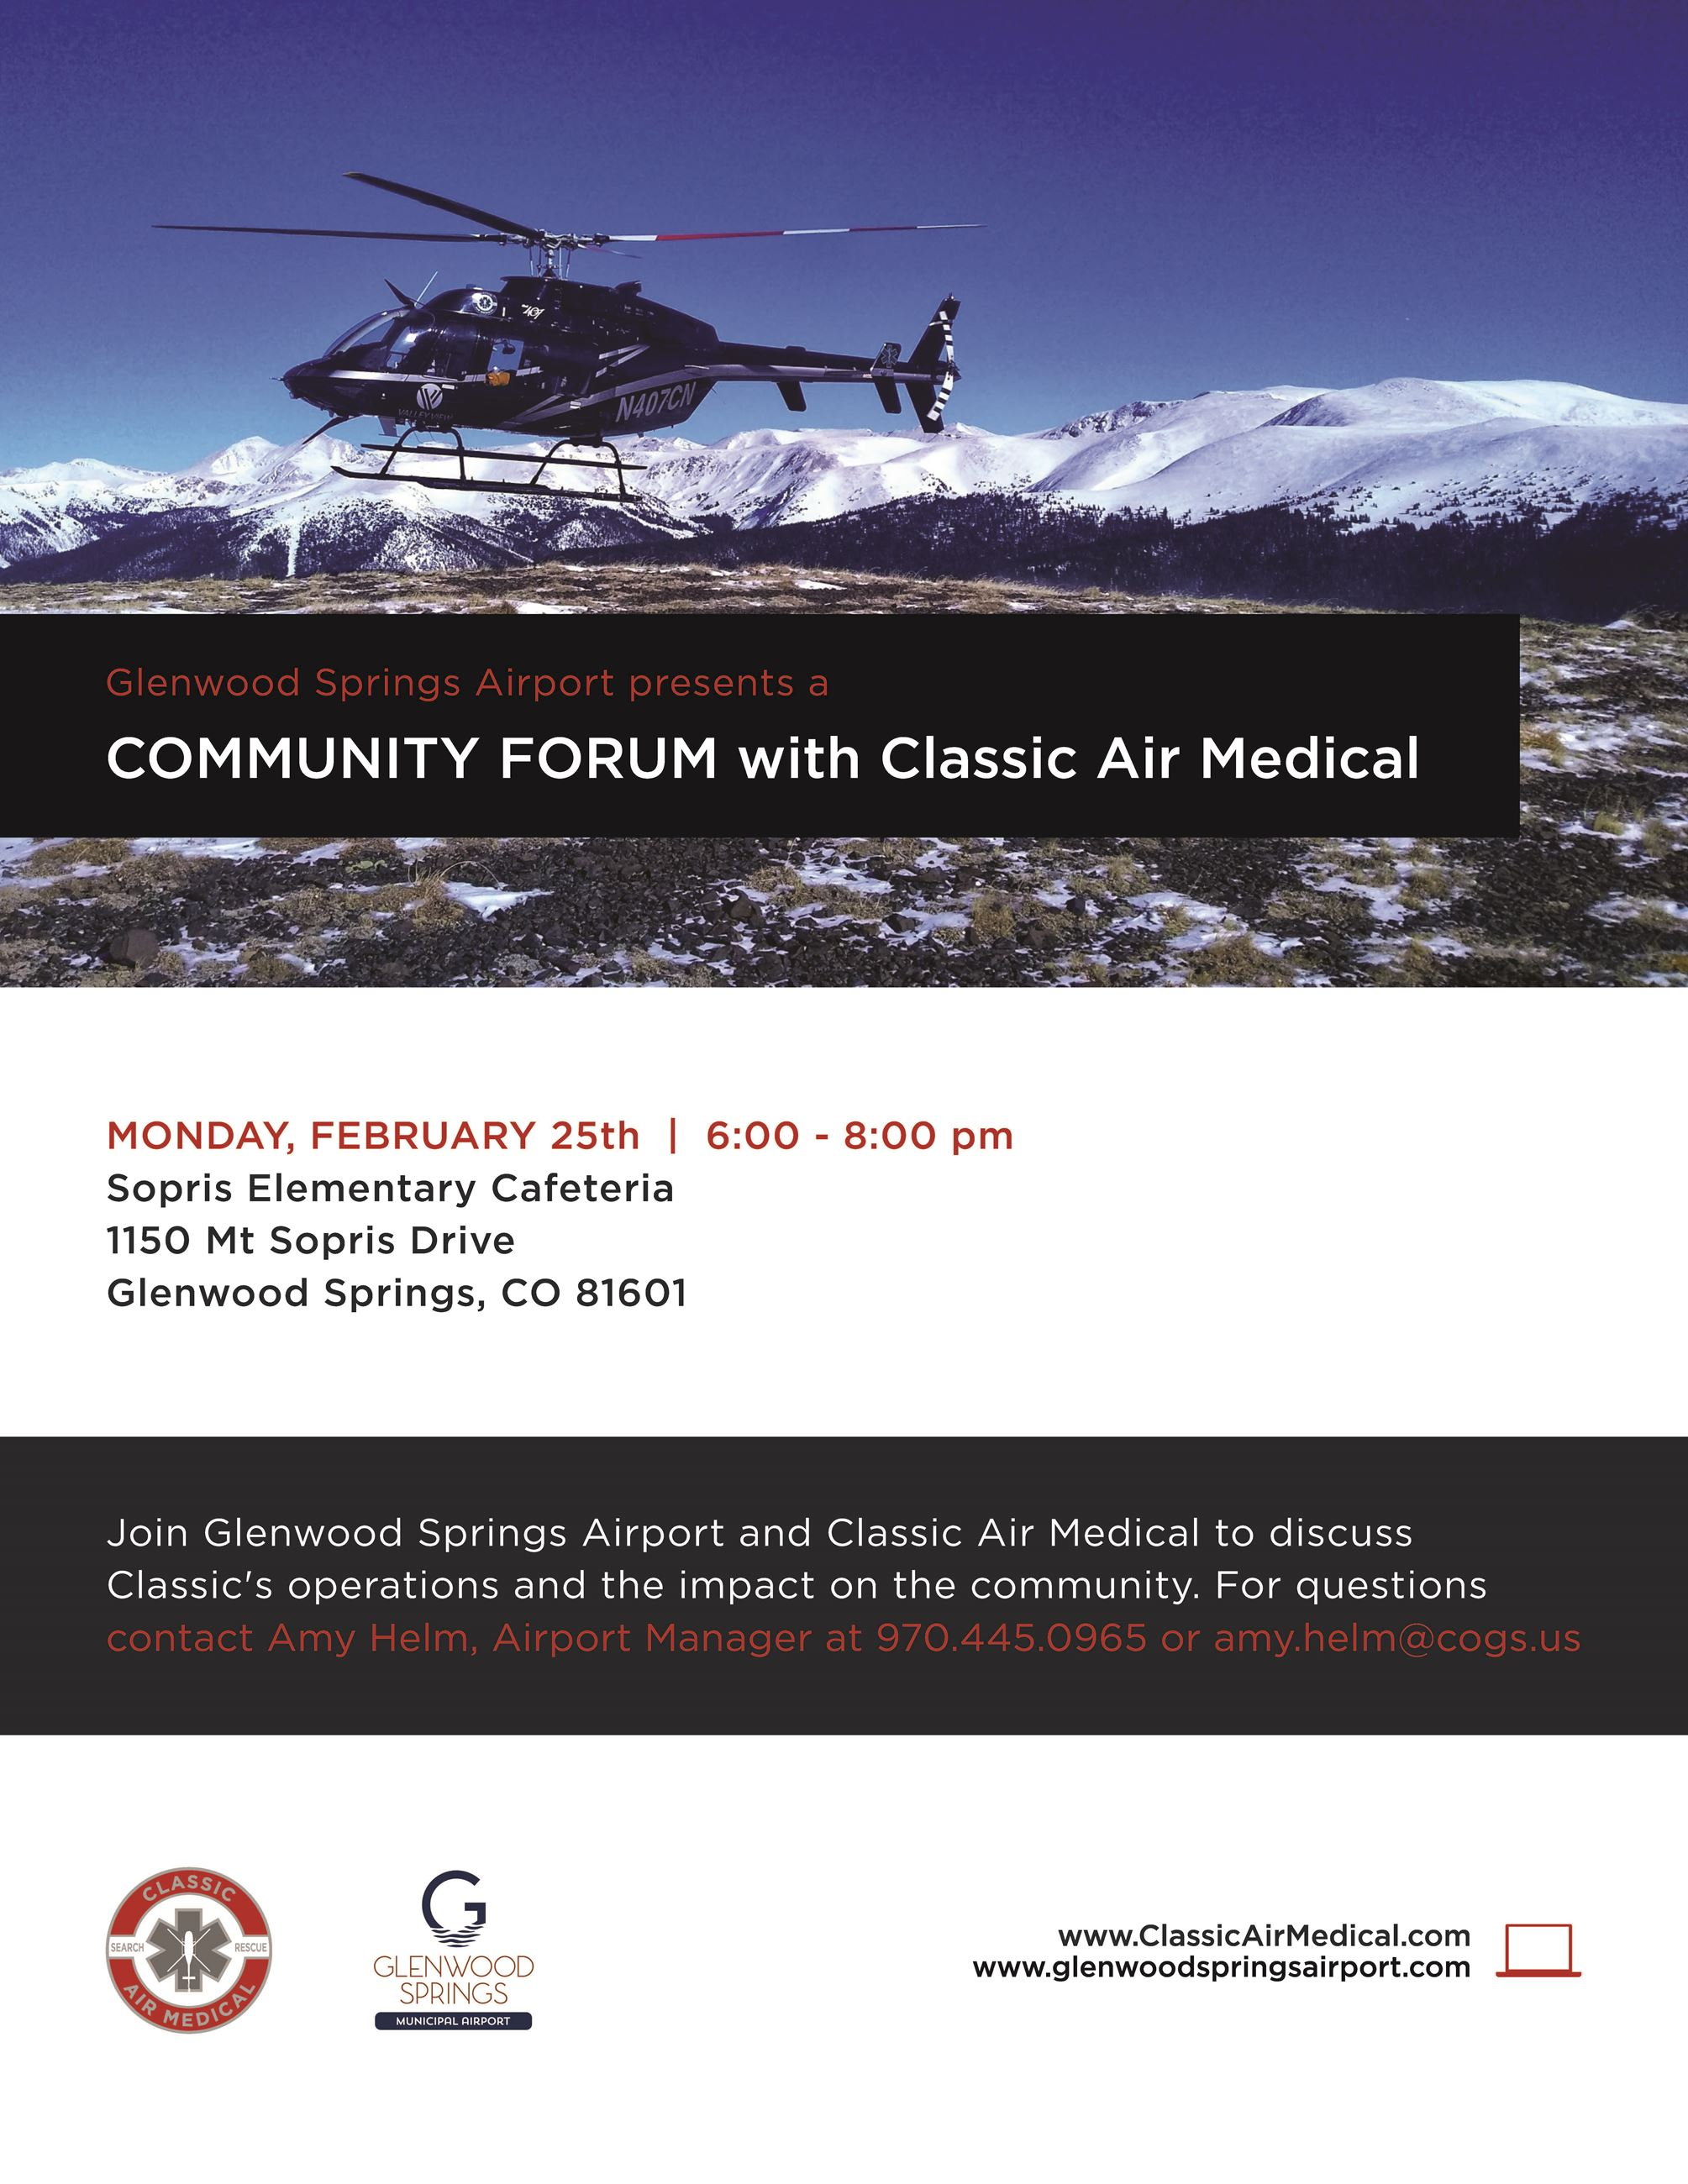 Glenwood Springs Airport Community Forum with Classic Air Medical